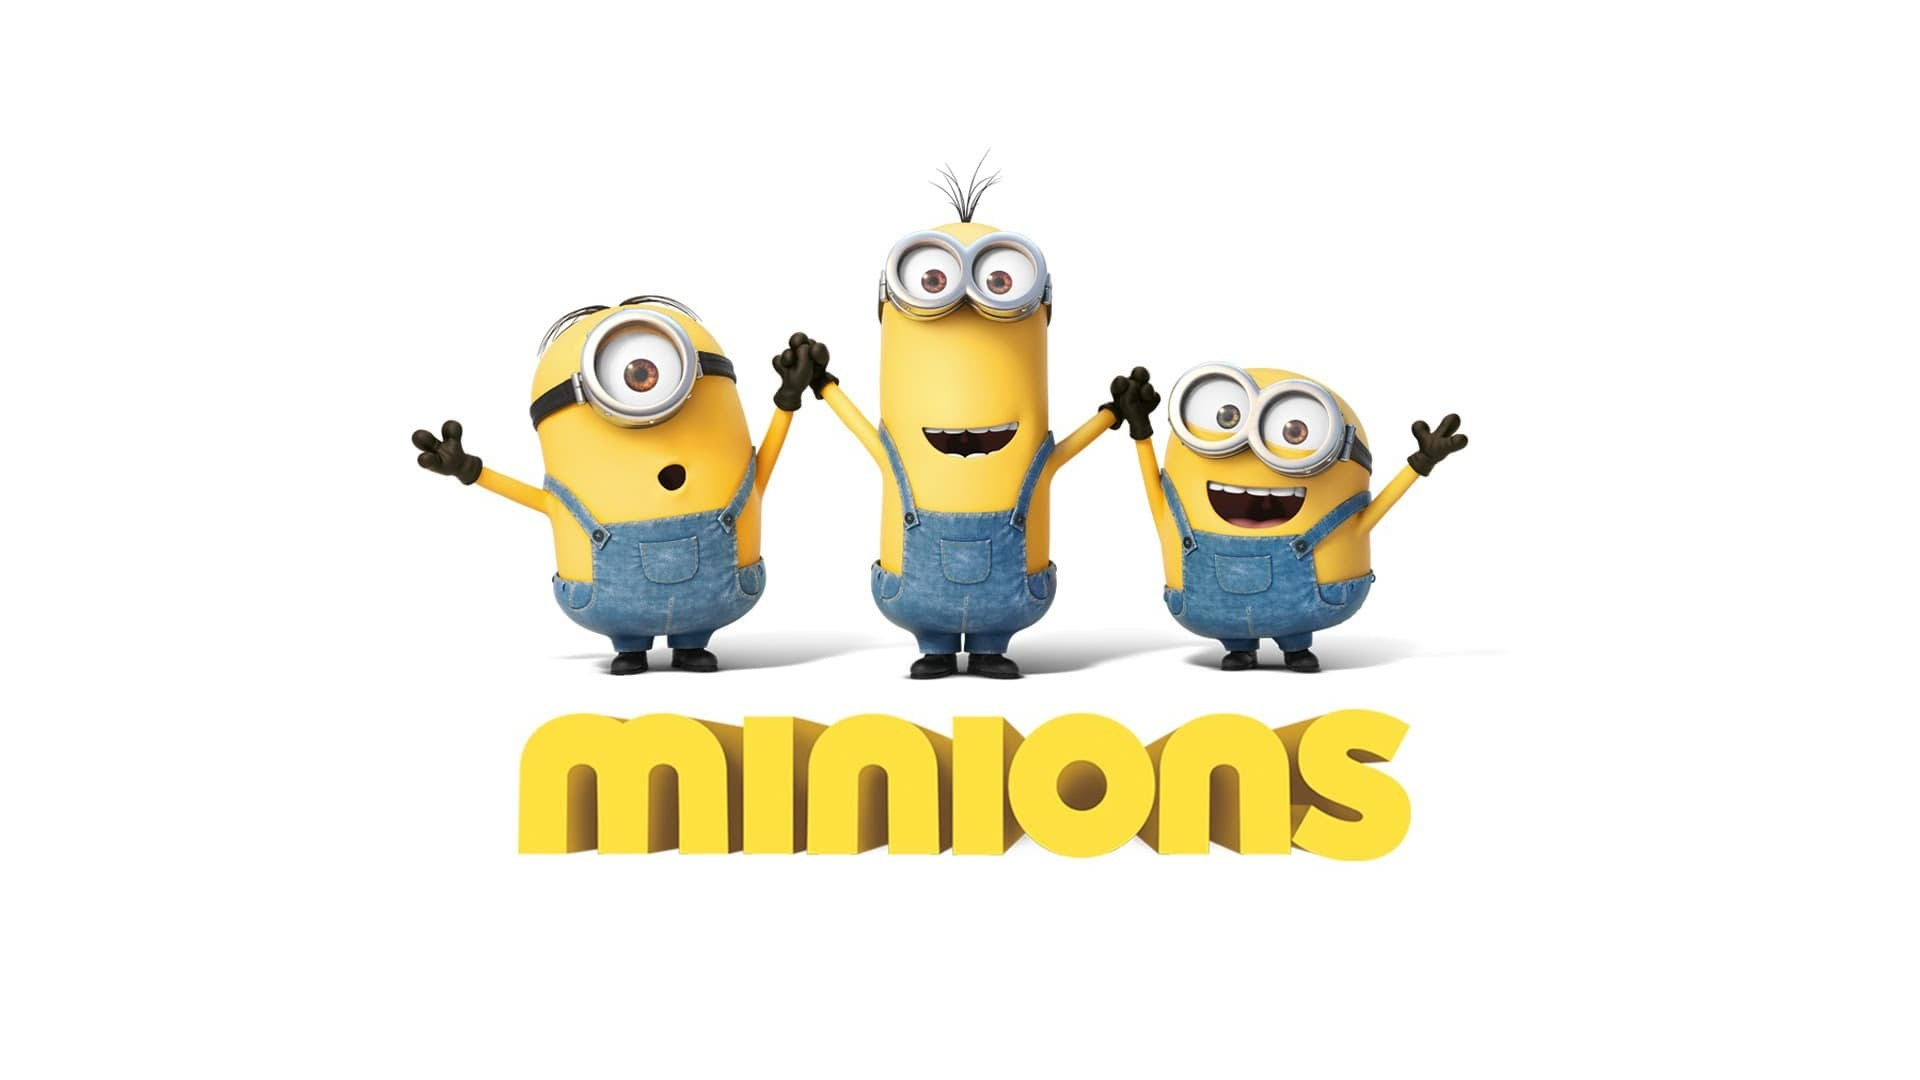 1920x1080 Minions Wallpapers hd